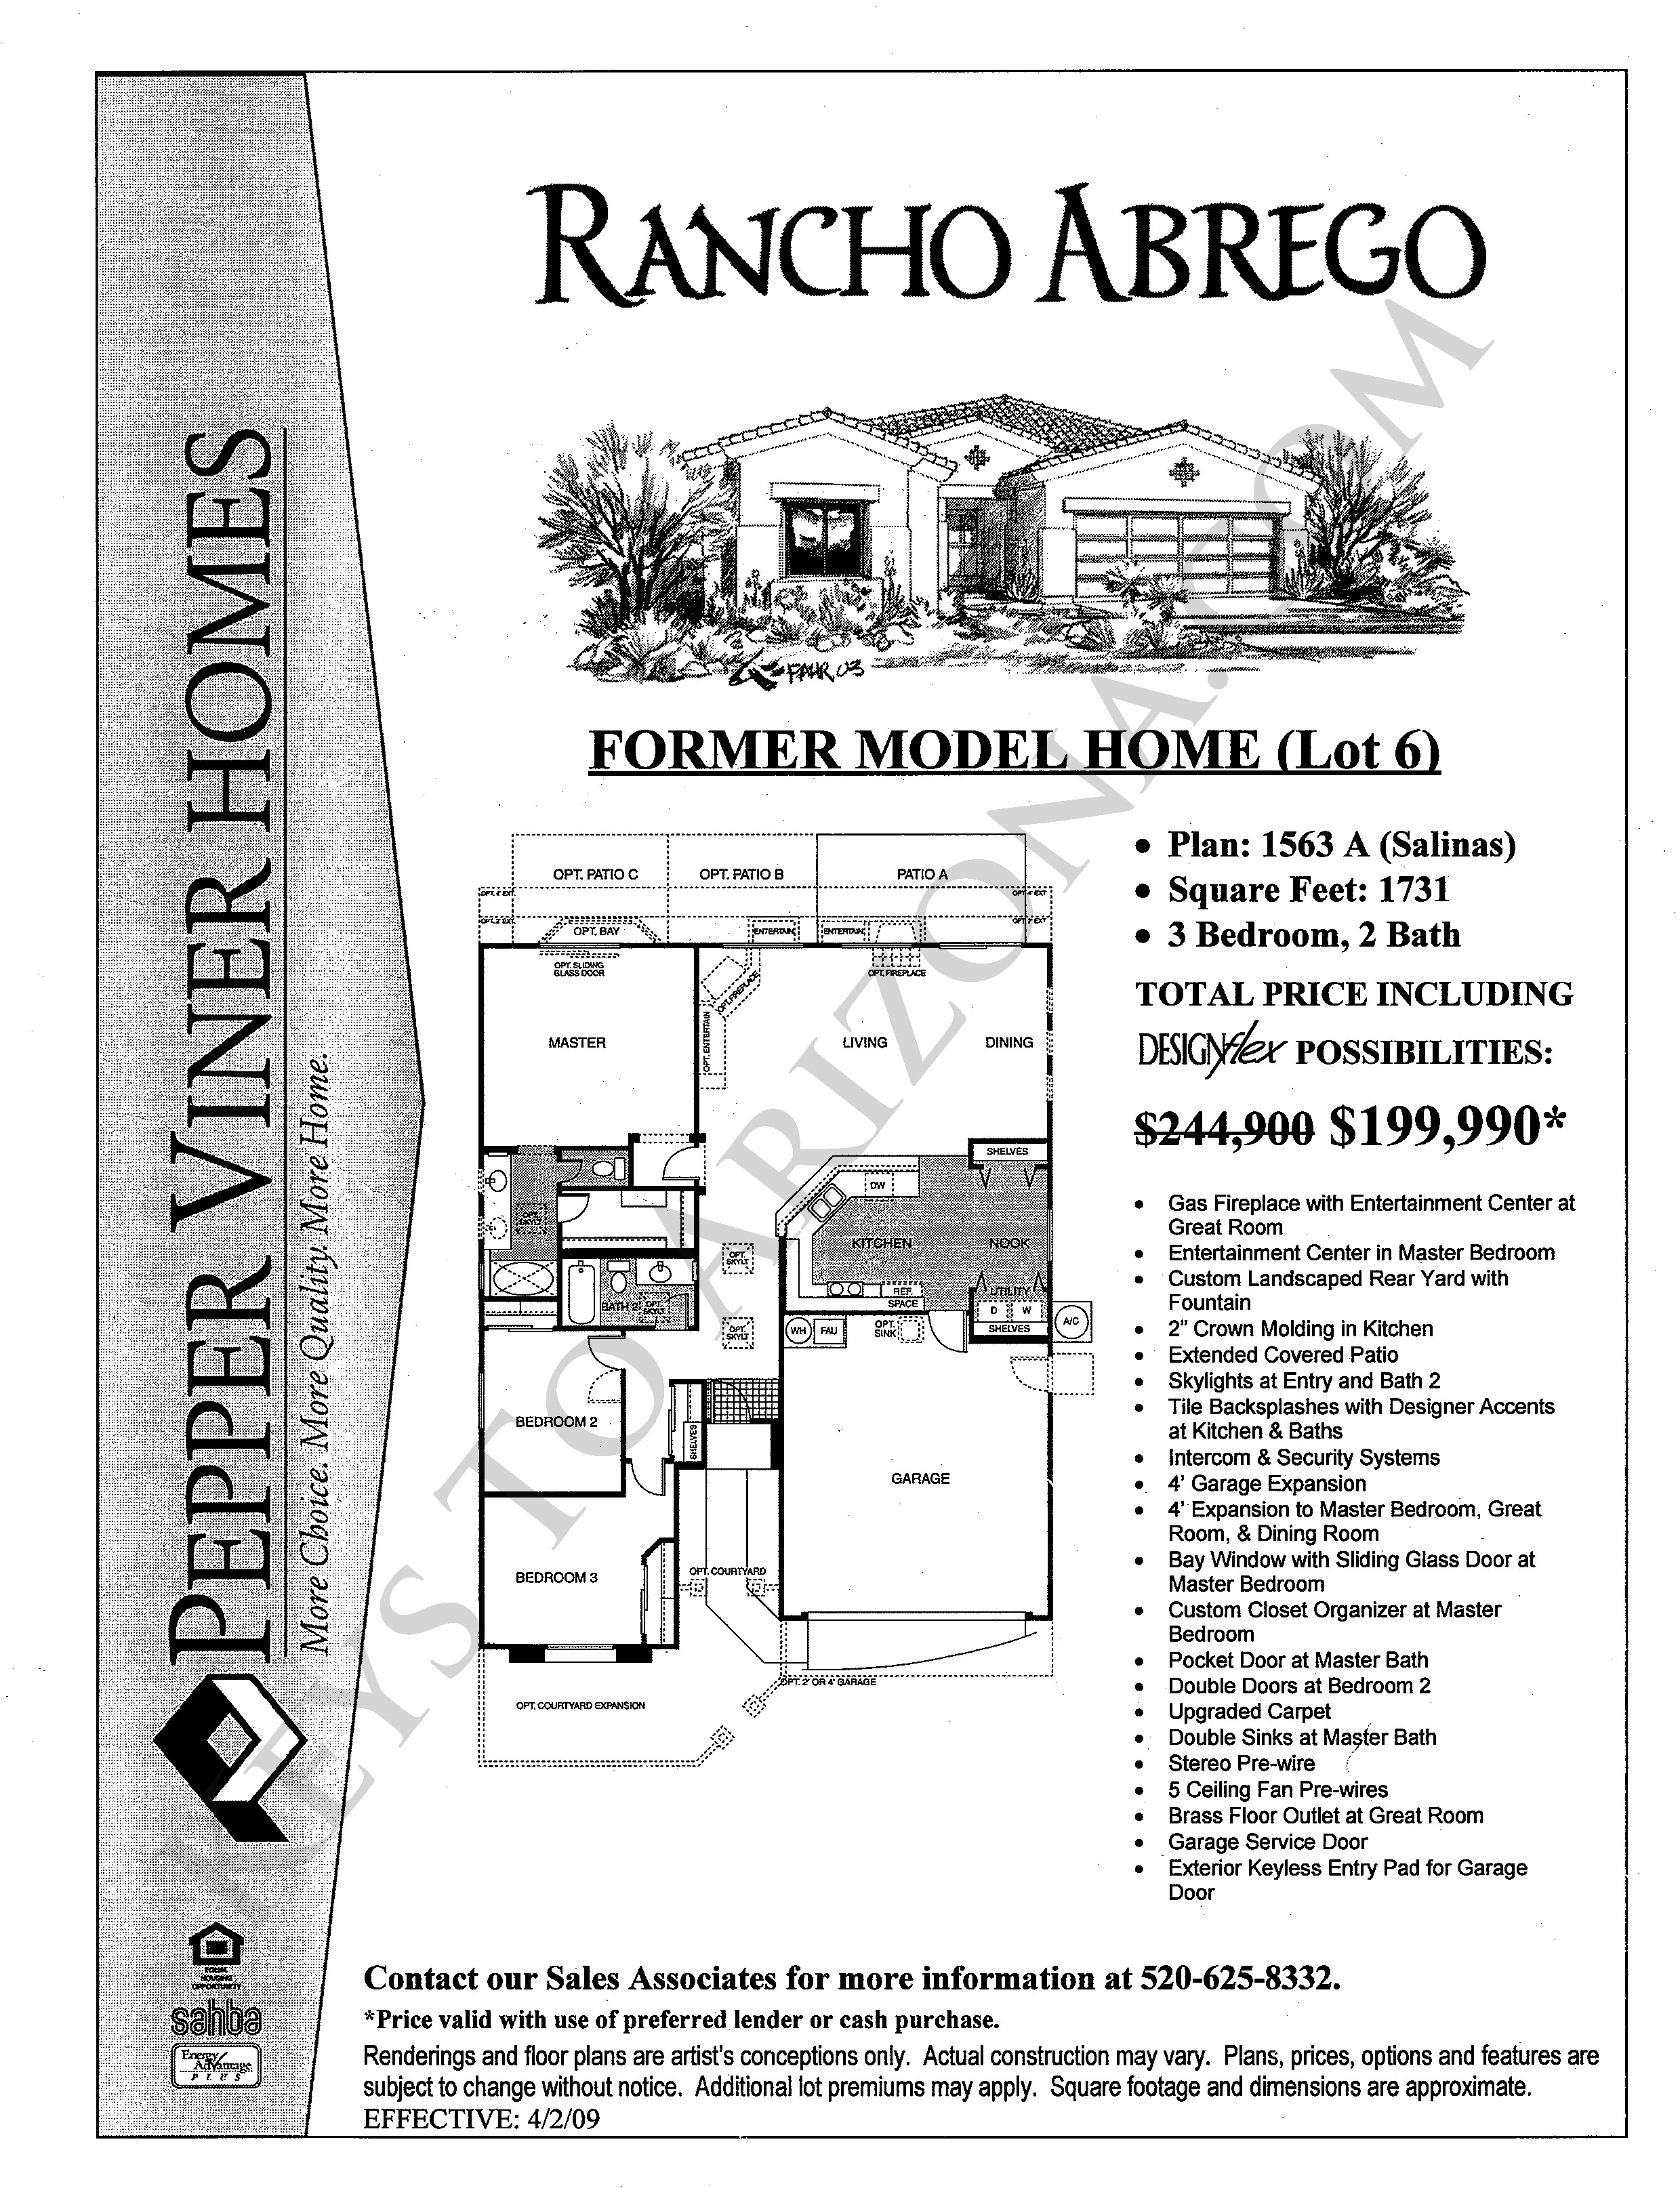 rancho-abrego-sahuarita-home-for-sale-spec-sheet